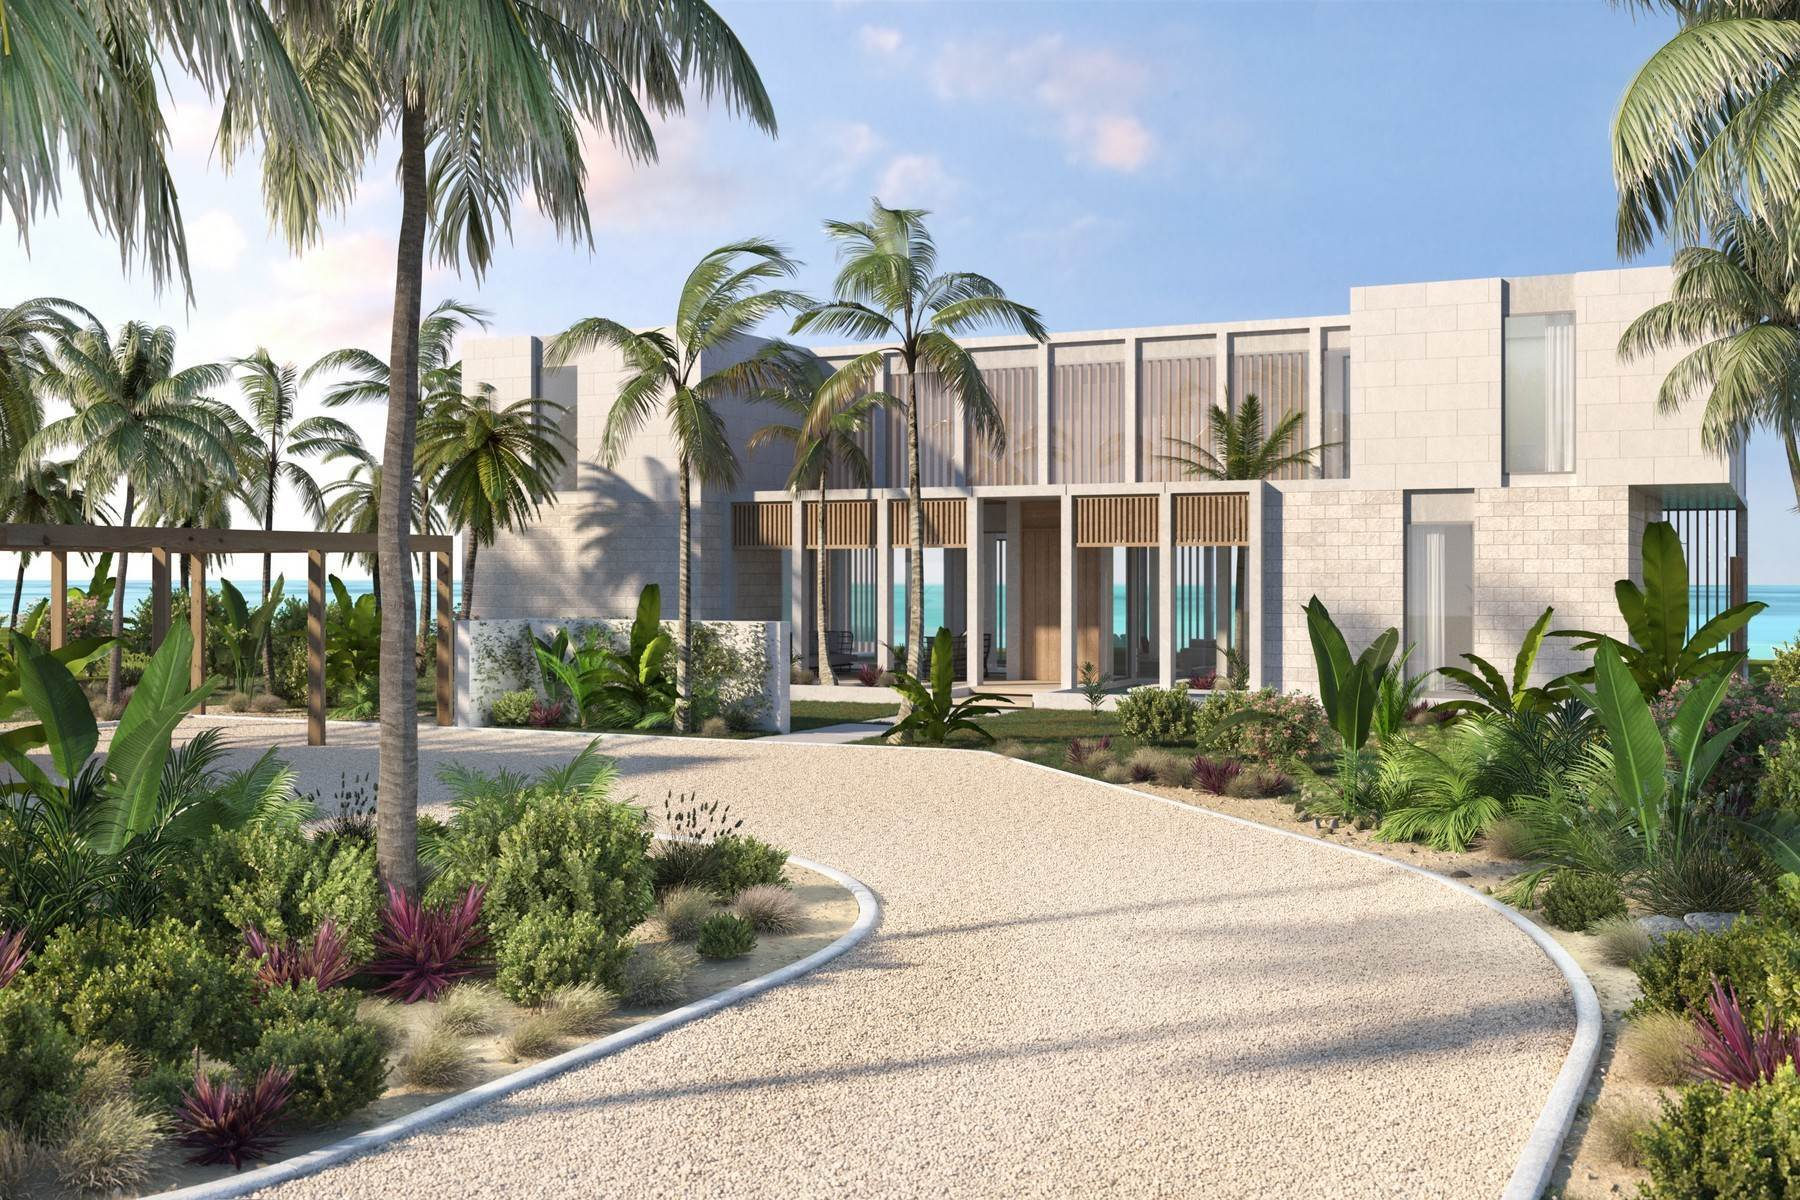 8. Single Family Homes for Sale at SOUTH BANK - THE OCEAN ESTATE I - BANKS VILLA 5 South Bank, Long Bay, Providenciales Turks And Caicos Islands